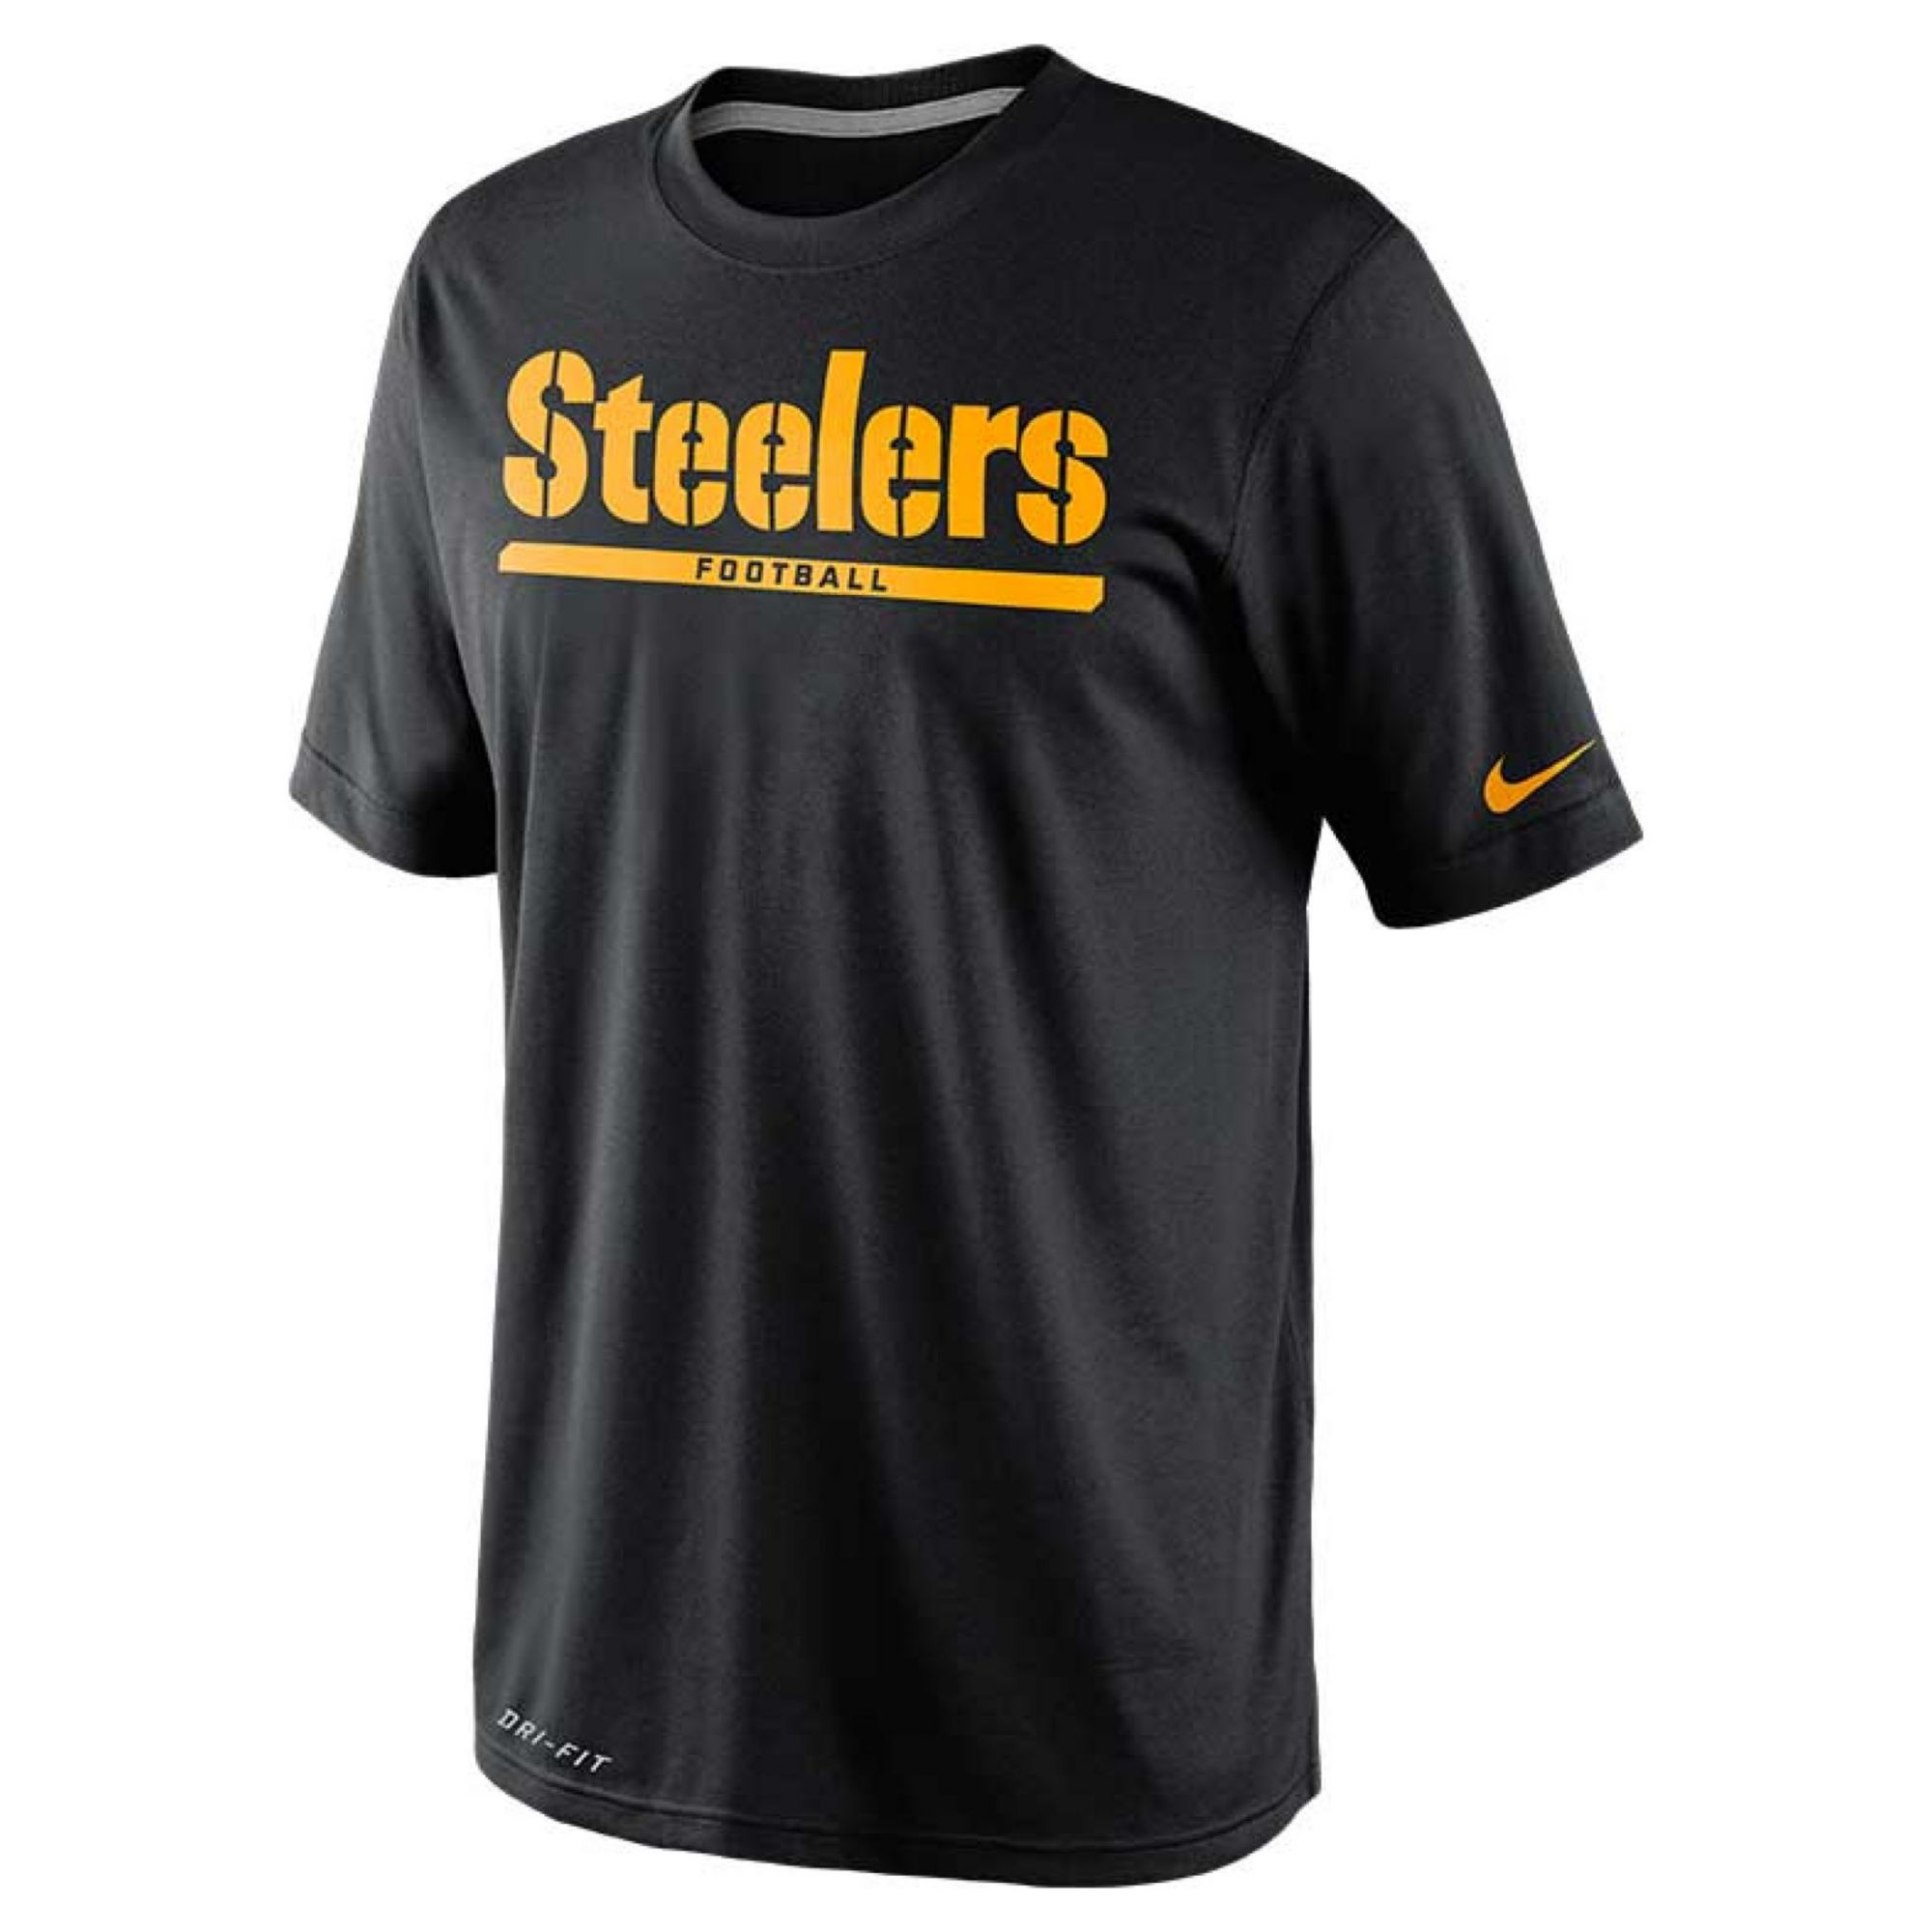 Men's clothing stores pittsburgh